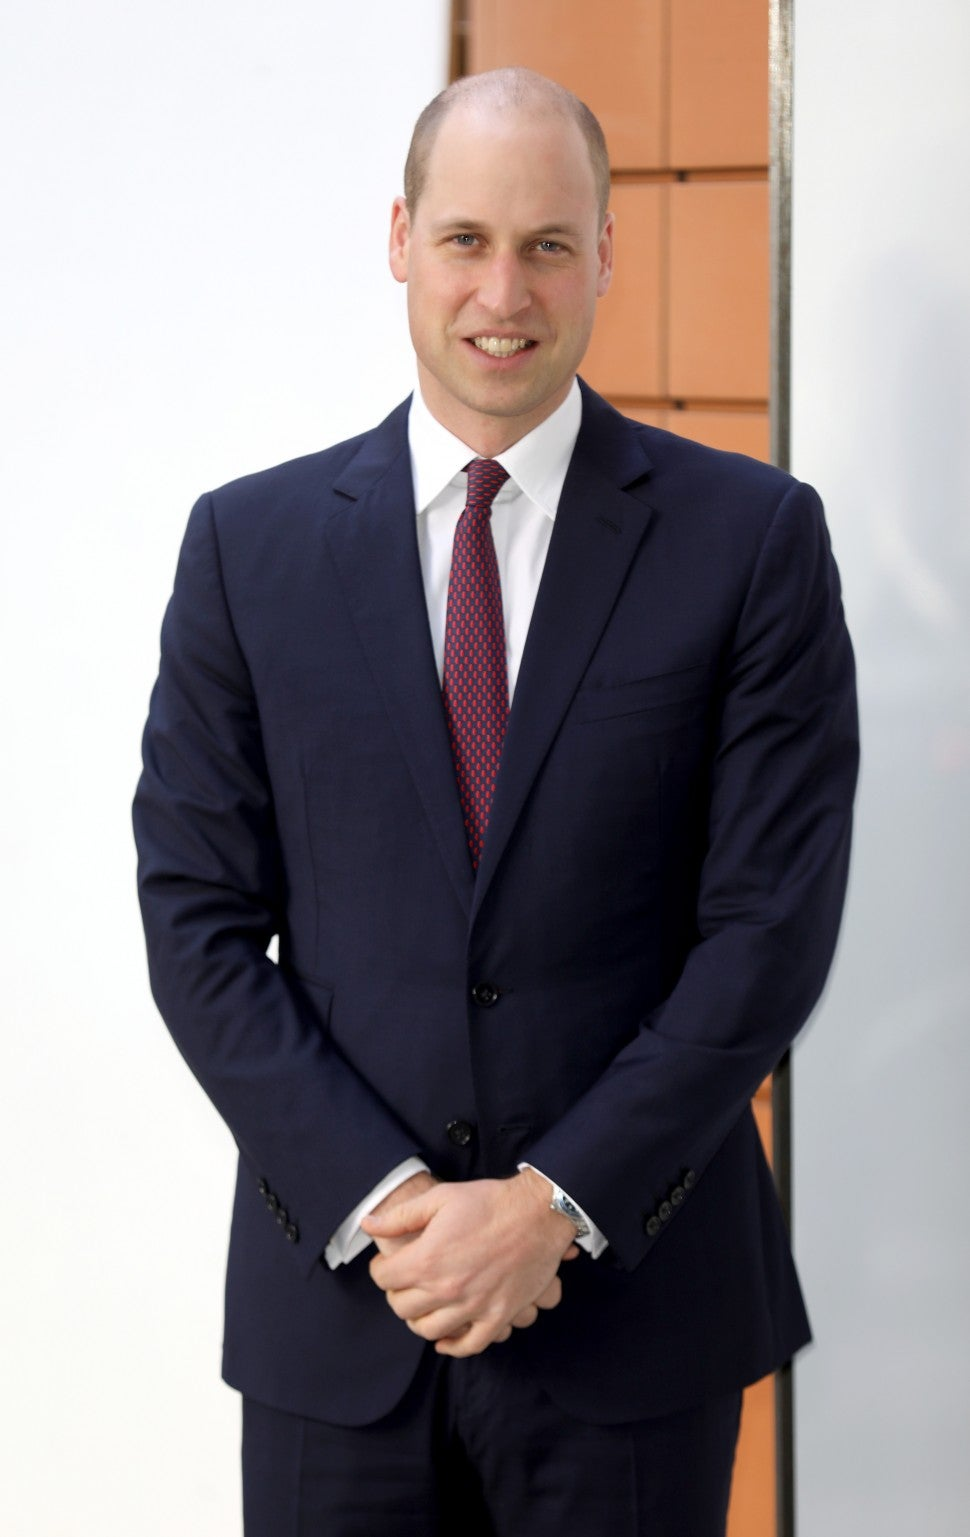 Prince William buzz cut